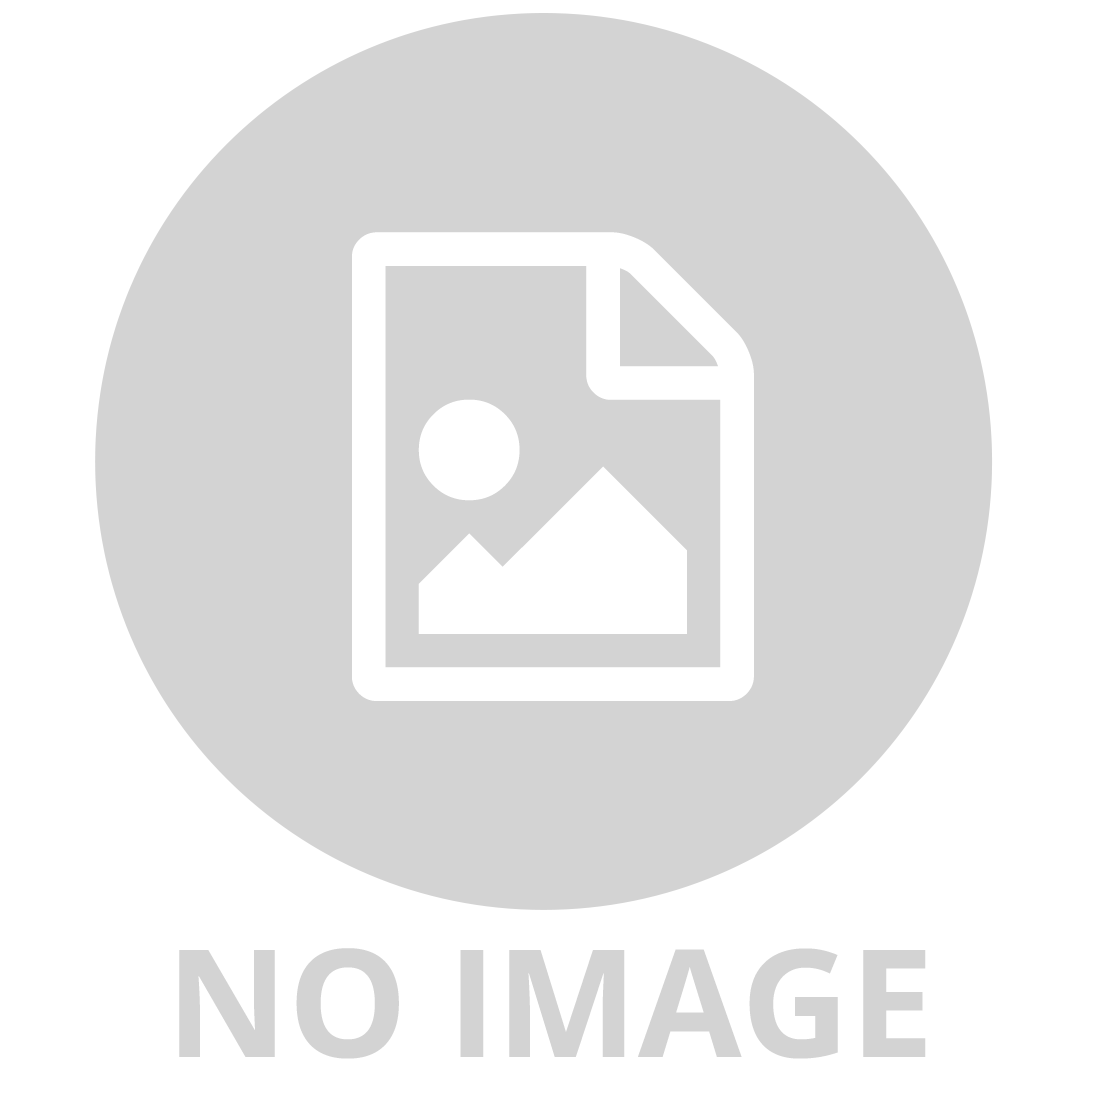 BRI WOODEN RAILWAY TRAVEL RECHARGEABLE TRAIN